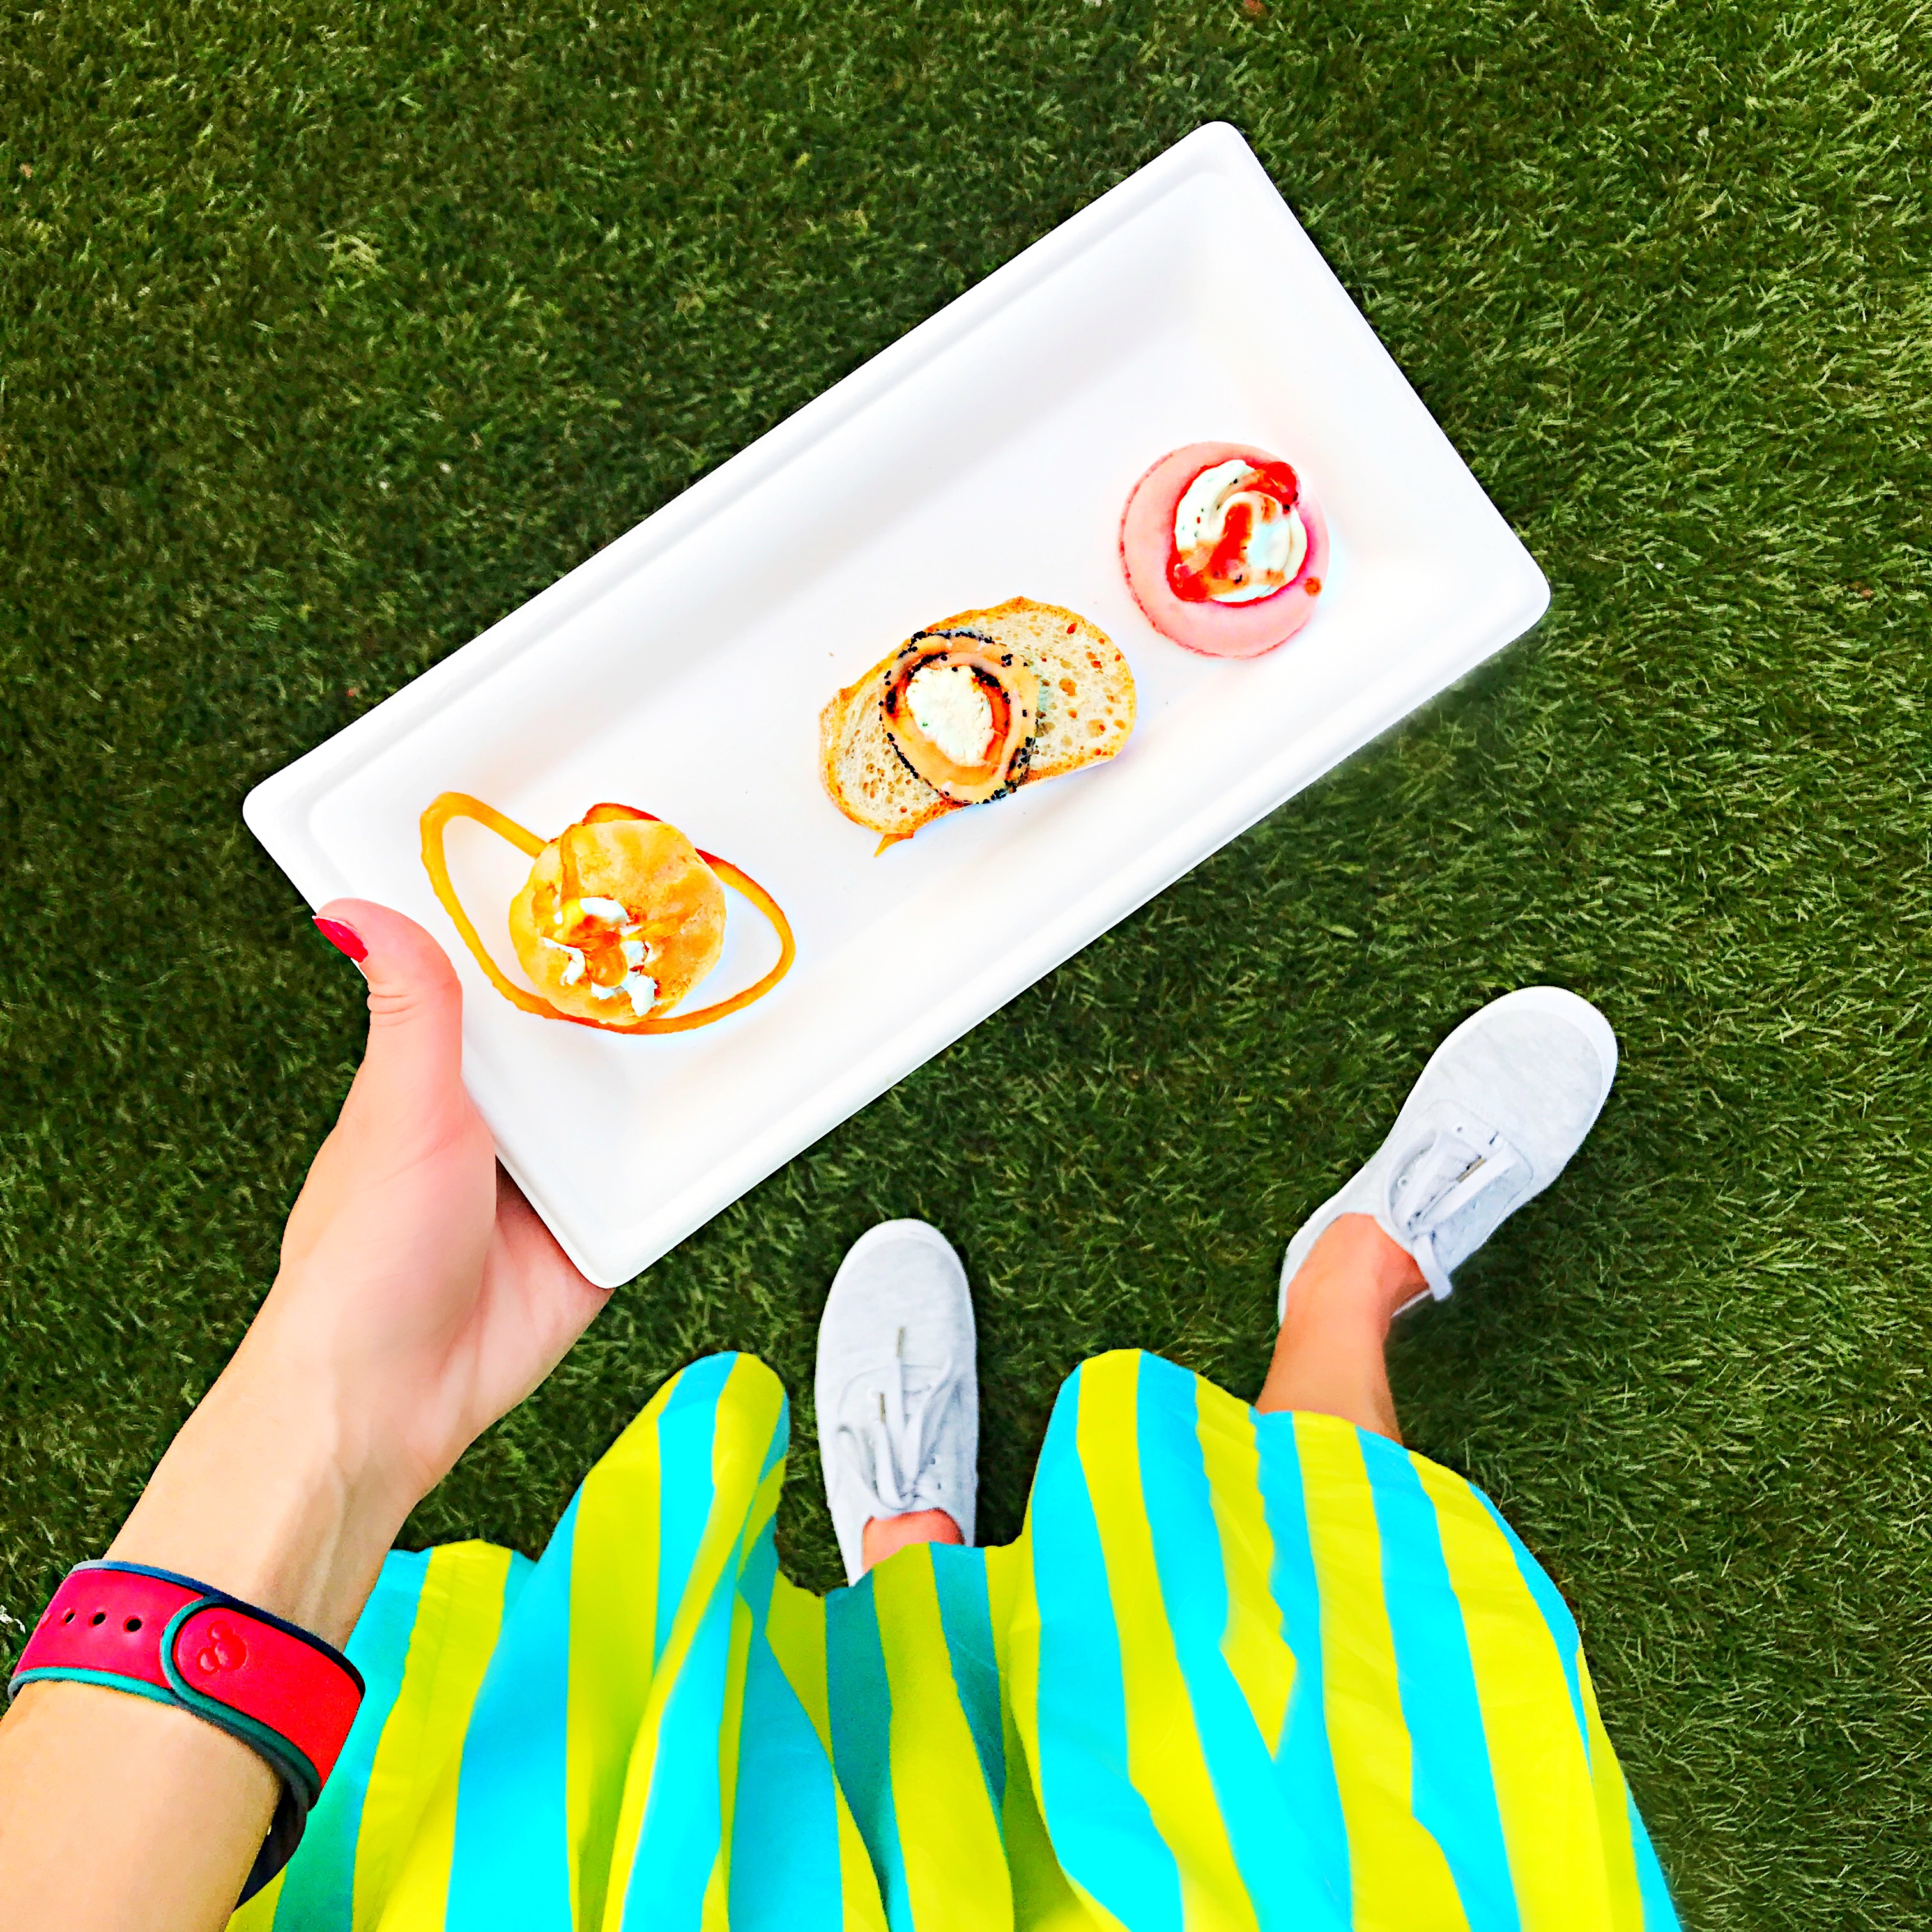 3 Things I Learned at the Epcot International Food & Wine Festival